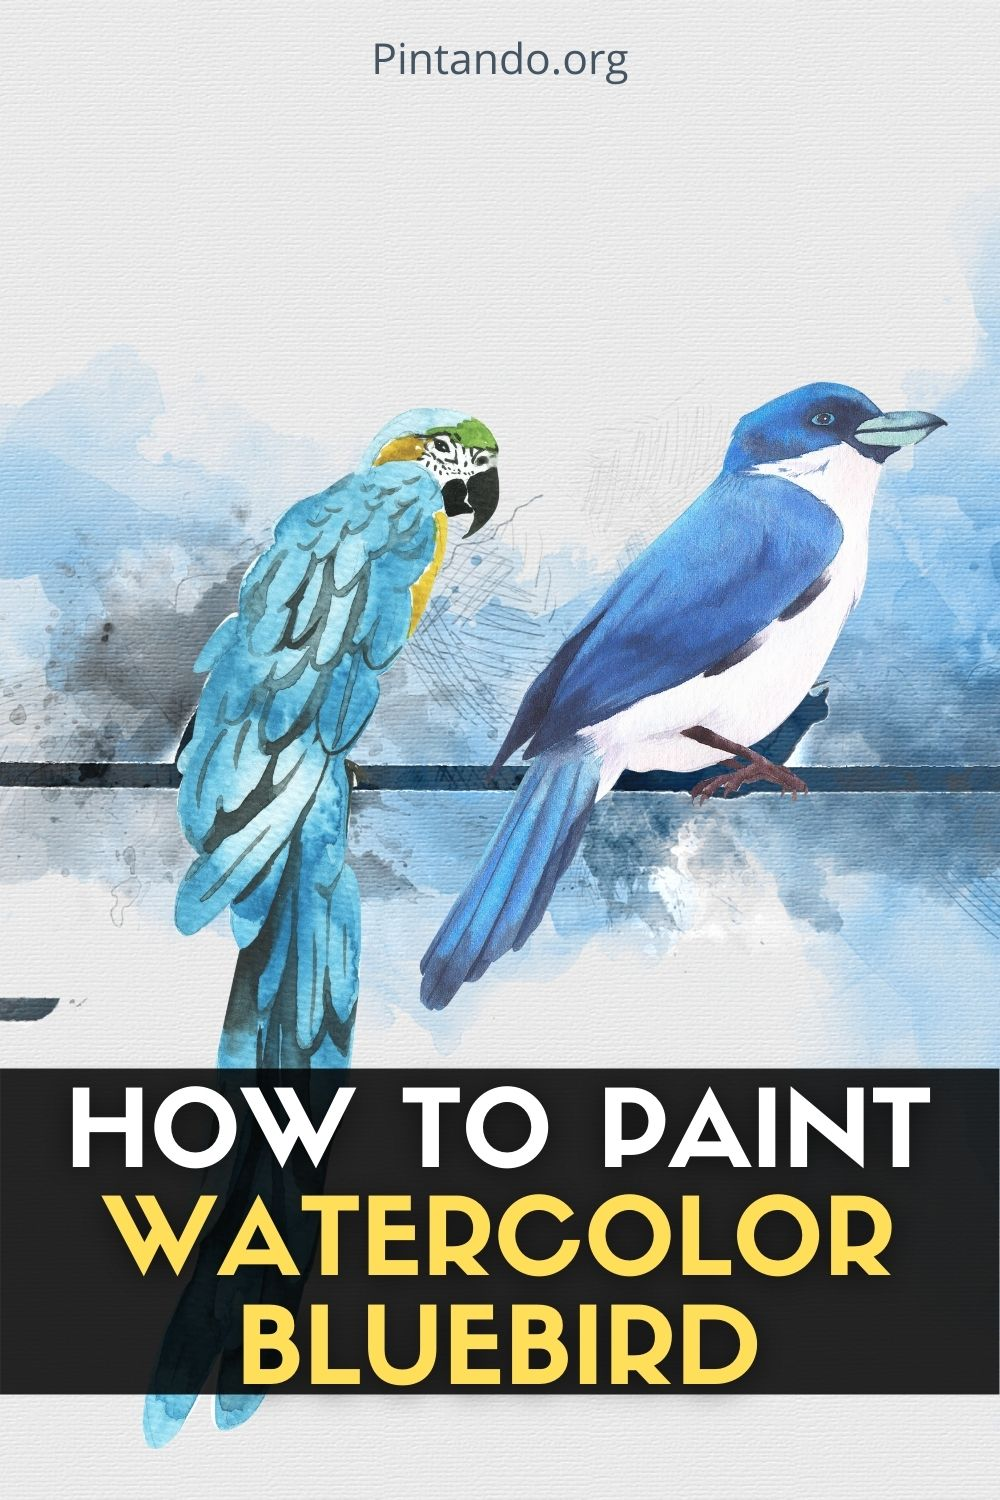 HOW TO PAINT WATERCOLOR BLUEBIRD